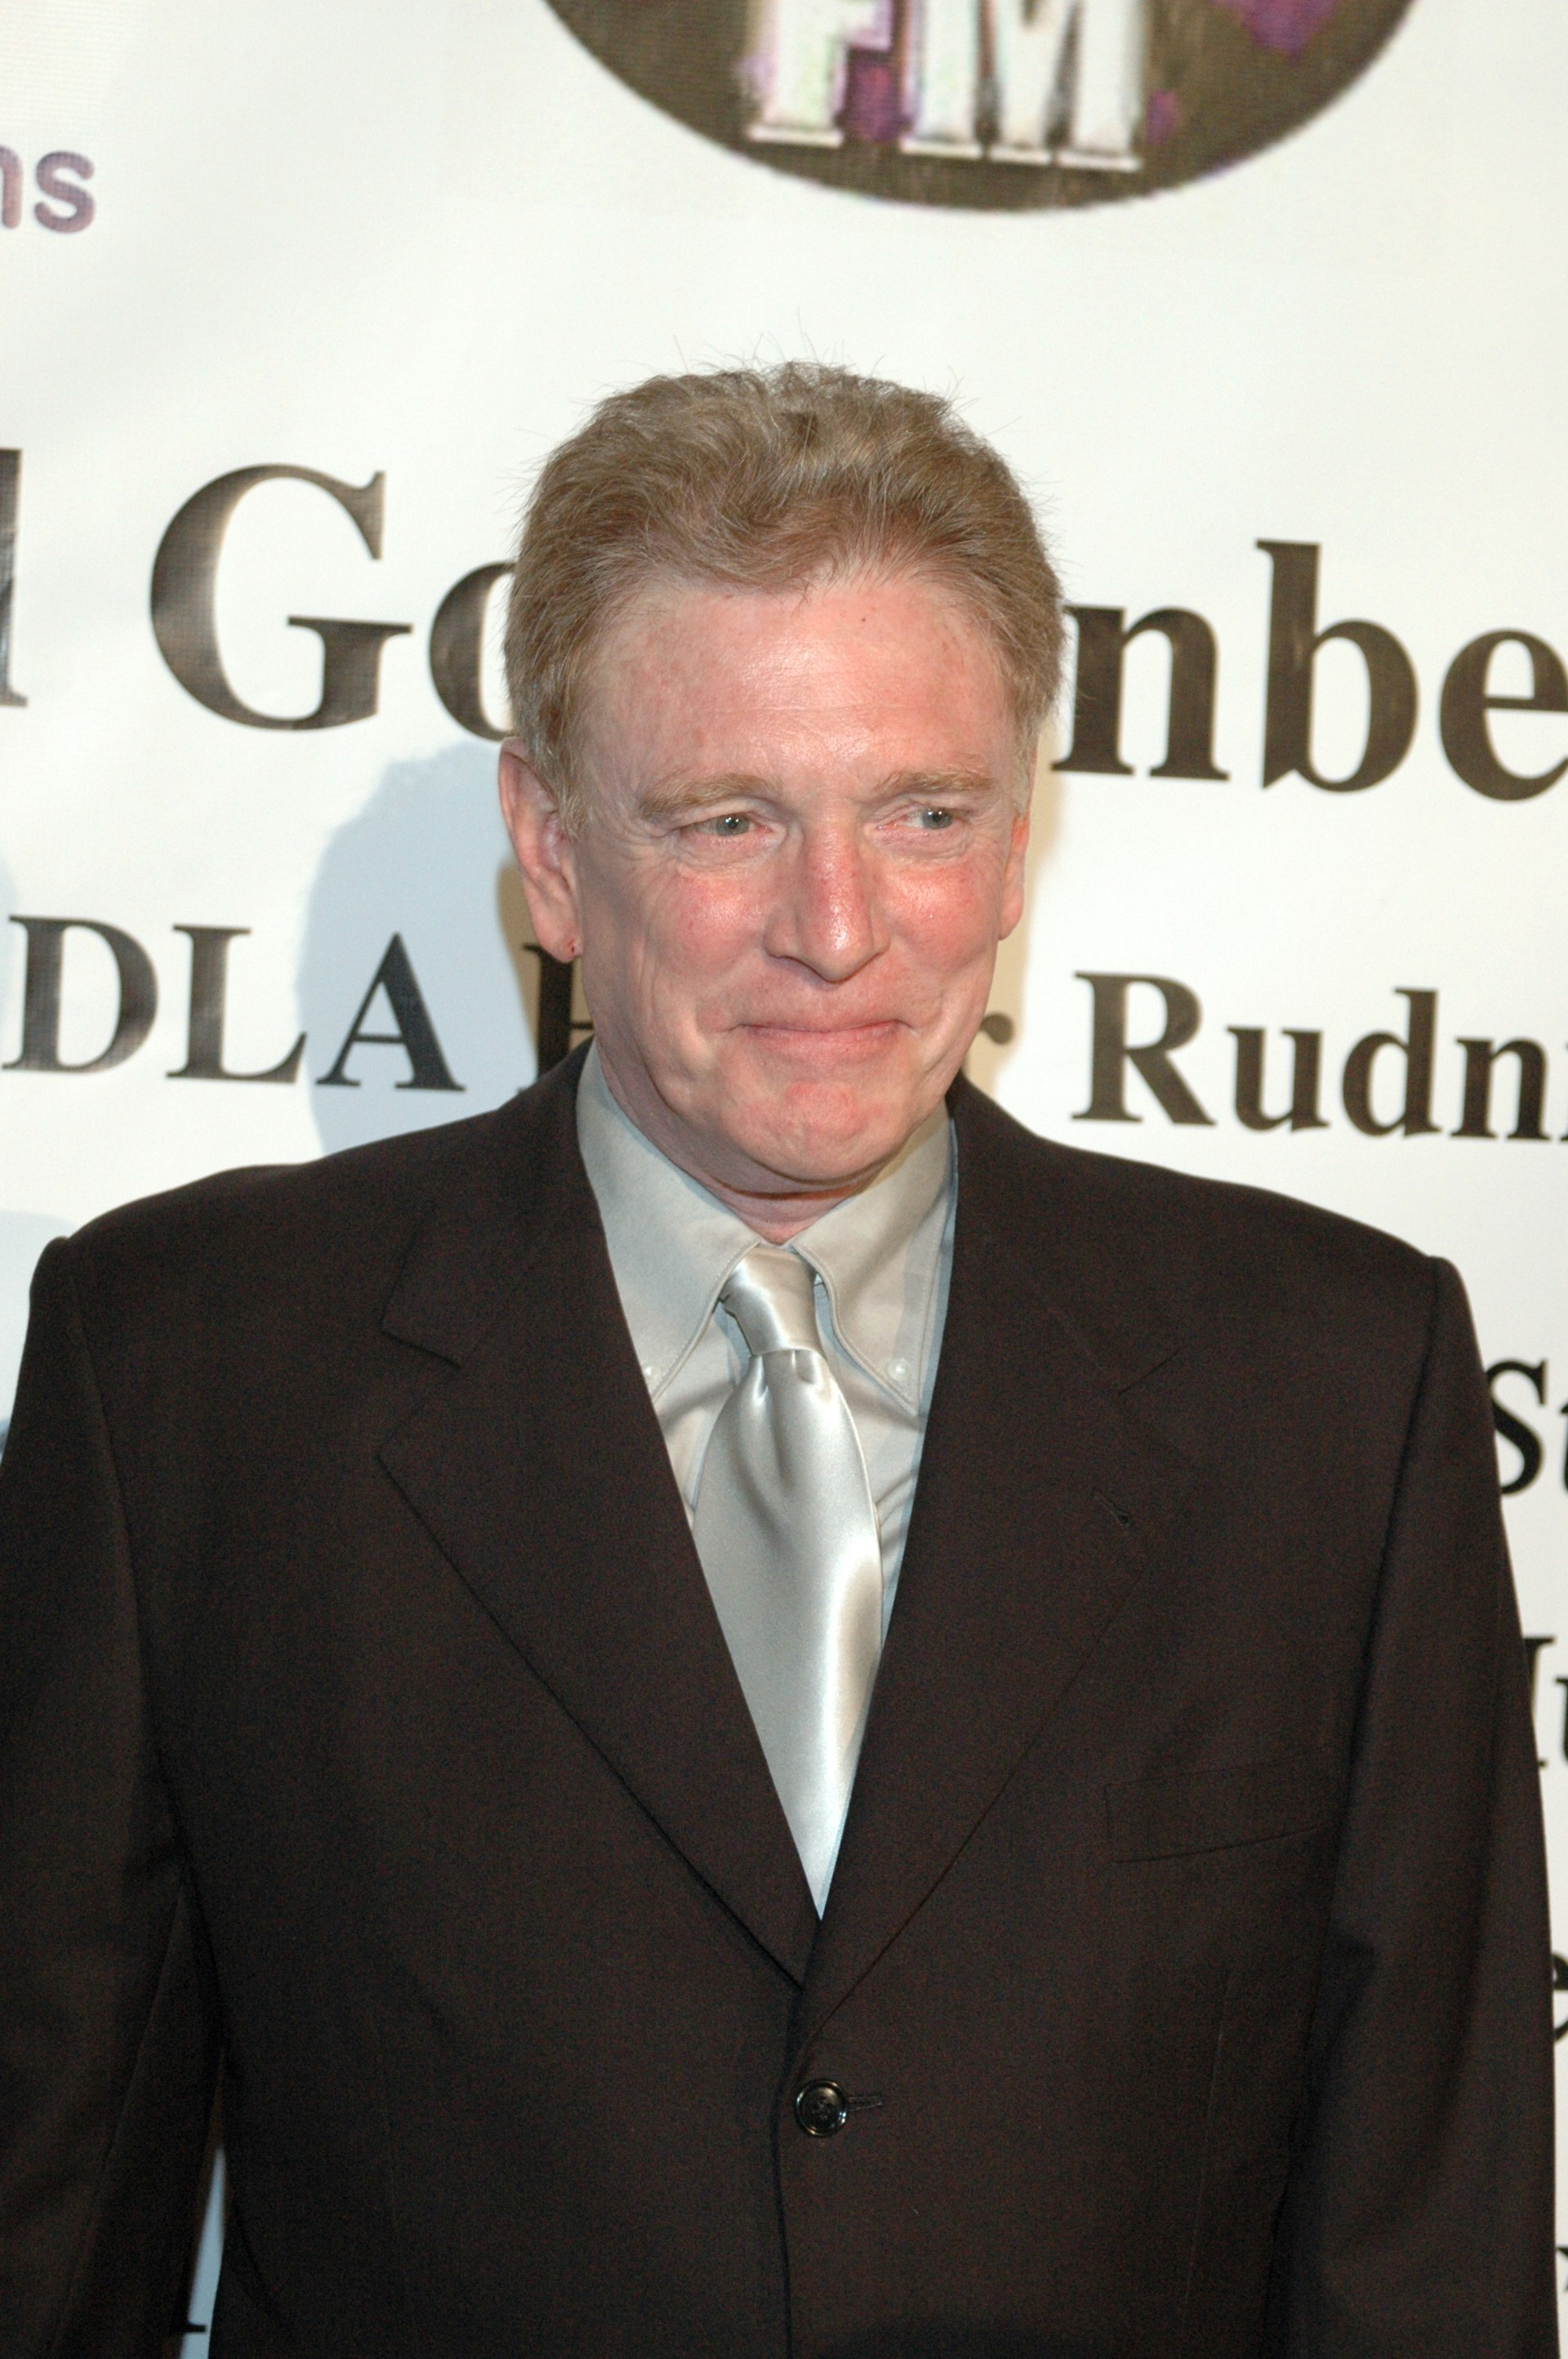 William atherton wikipedia for The atherton